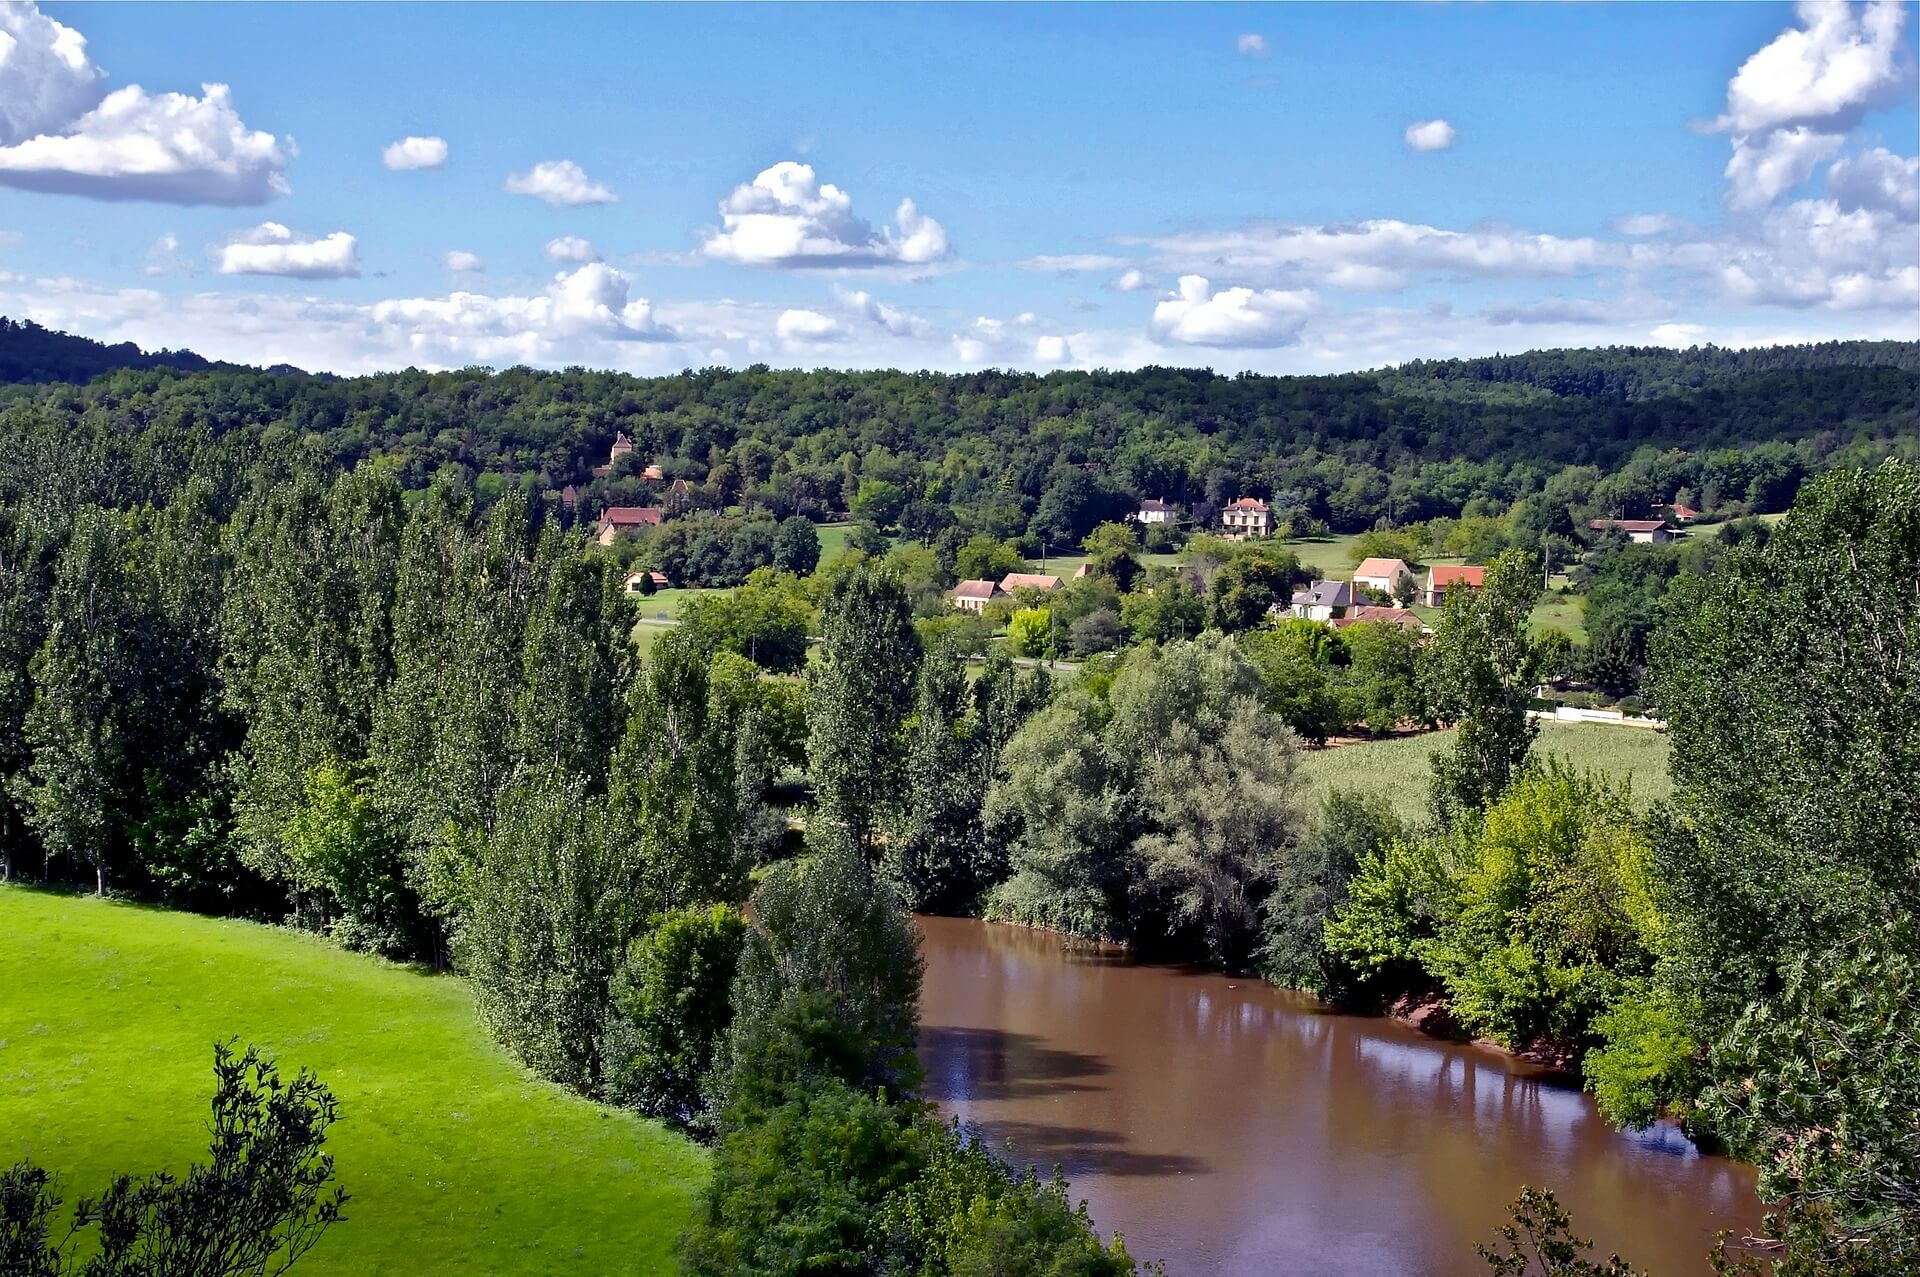 verdure-arbres-dordogne-le-blog-freed-home-camper-le-blog-fhc--freed-home-camper